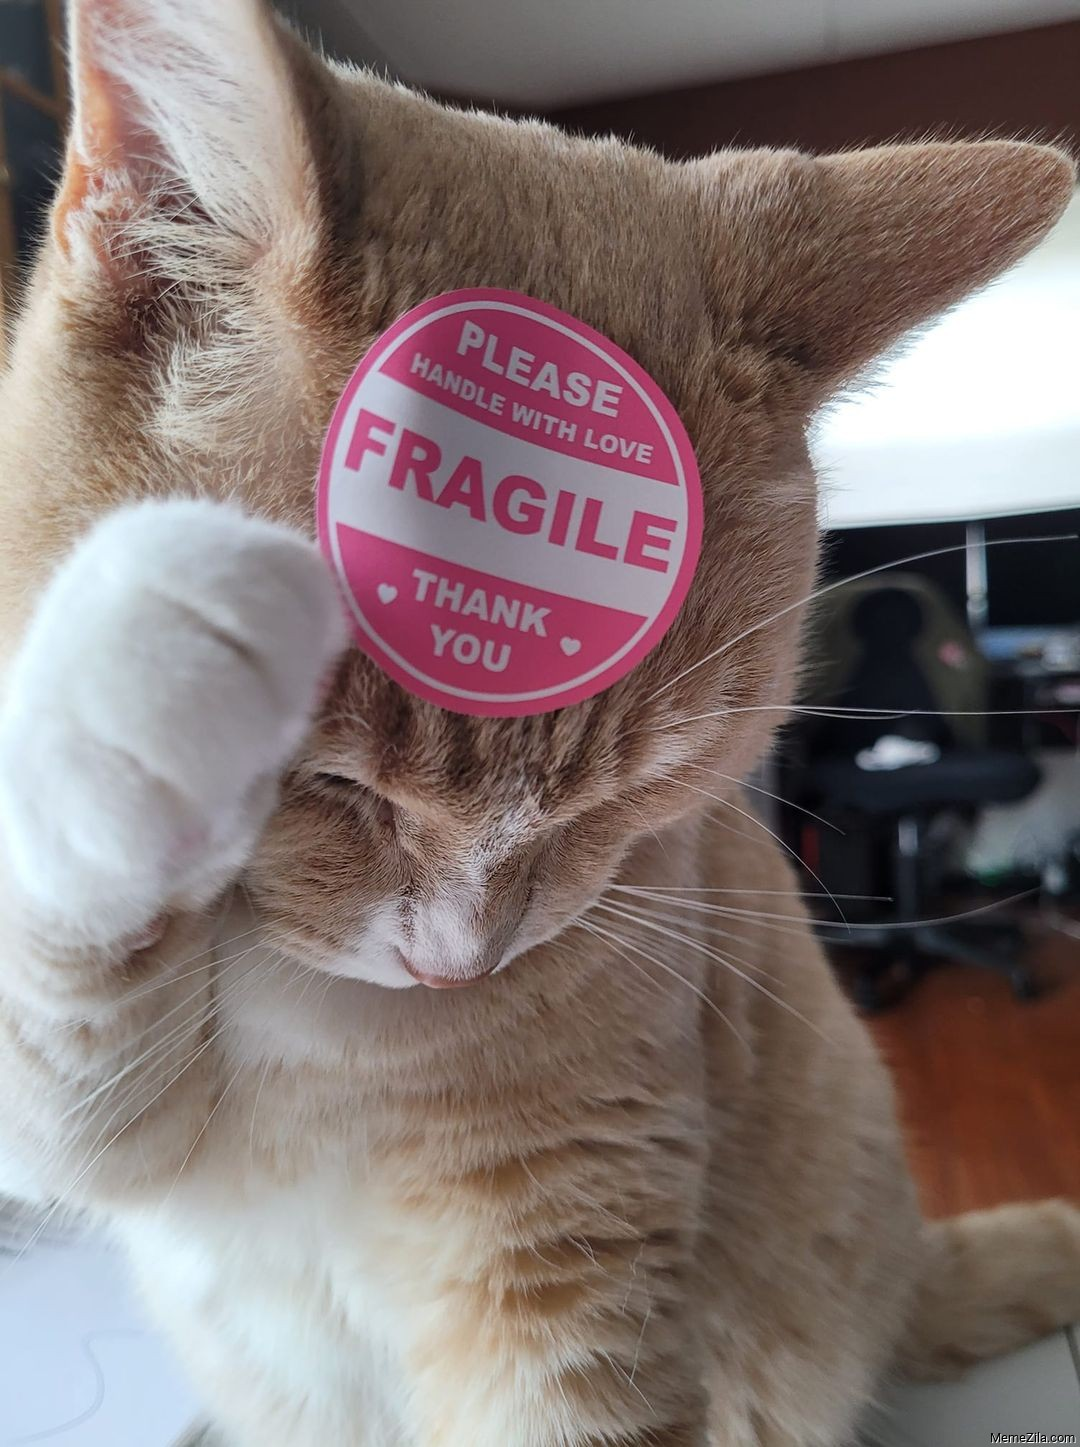 Please handle with care Fragile Thank you meme